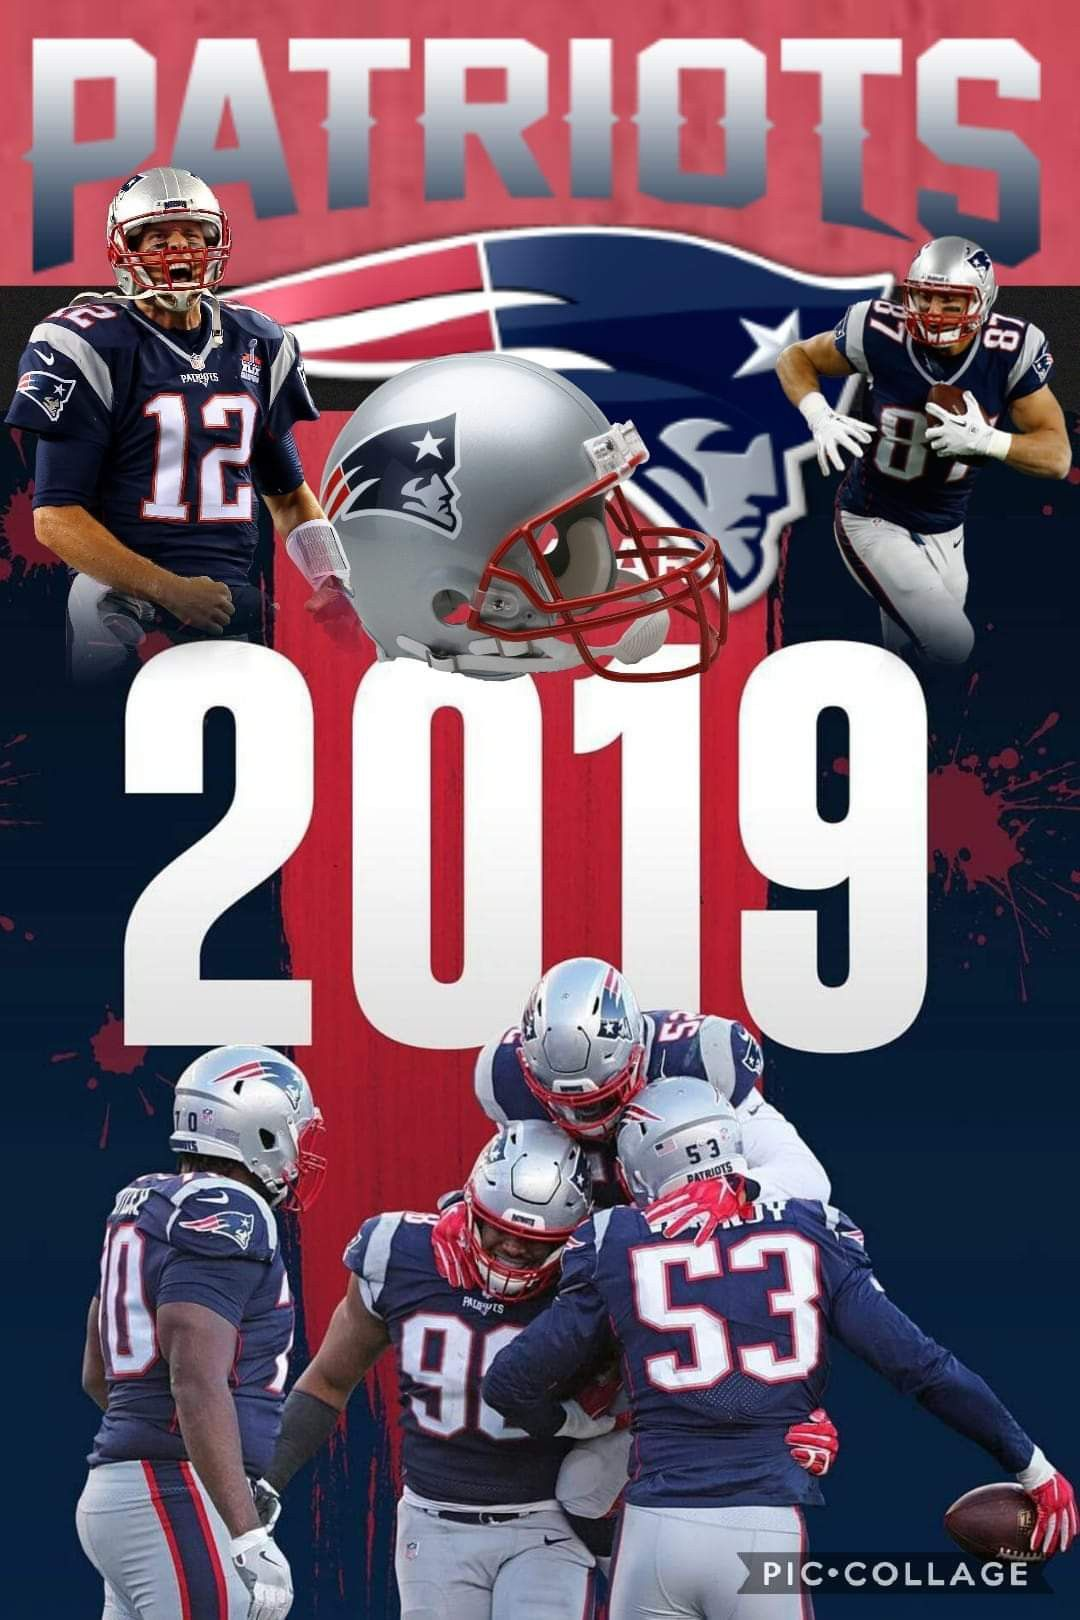 Nep Baby 2019 Repost By Pulseroll The Leaders In Vibrating Training Recovery New England Patriots Football New England Patriots New England Patroits